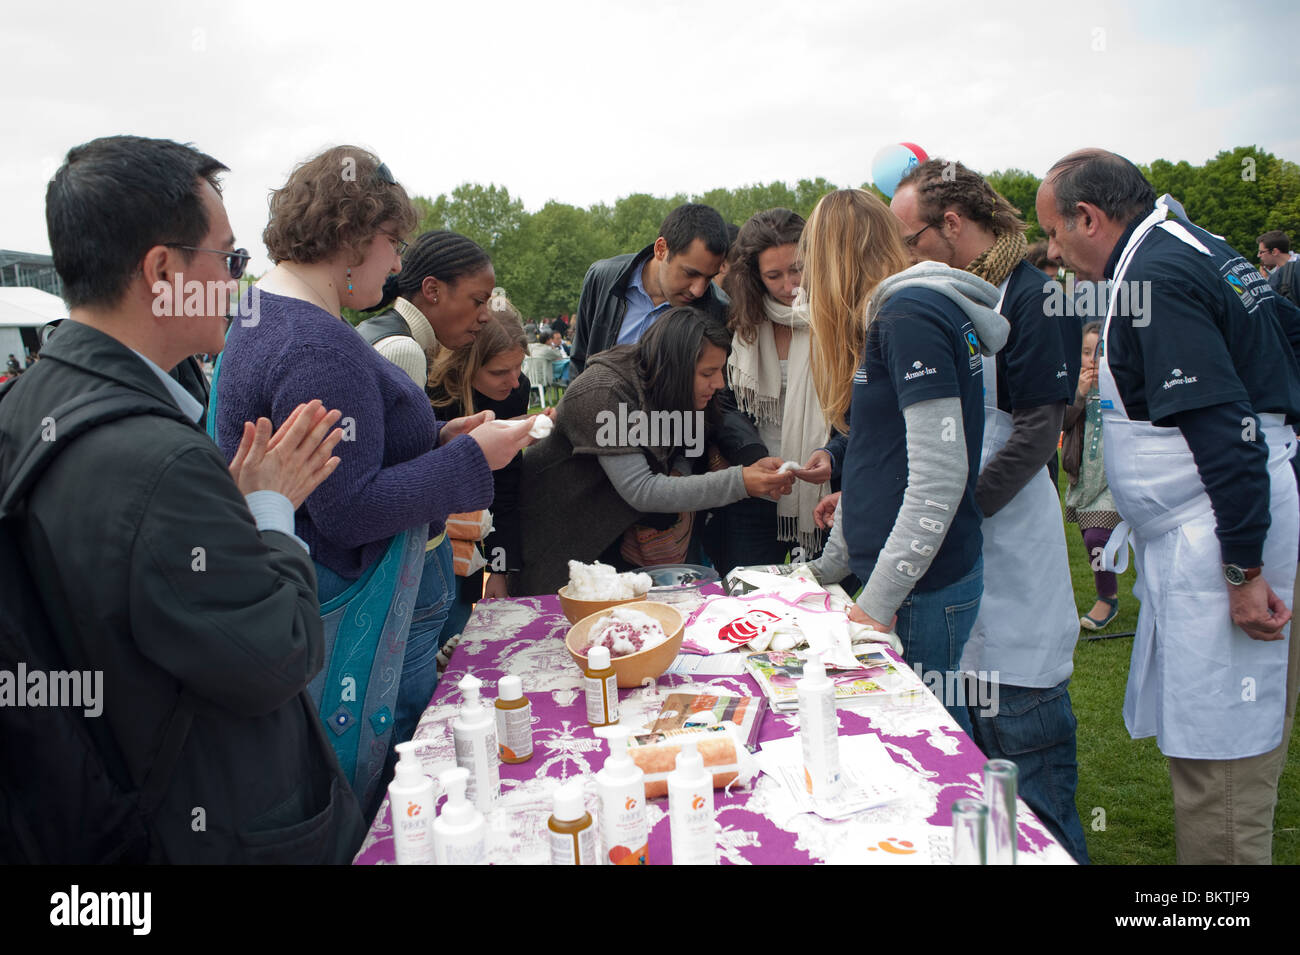 Celebration of World 'Fair Trade' Day, with Women Trying 'Fair Trade', Organic Cosmetics on Lawn - Stock Image